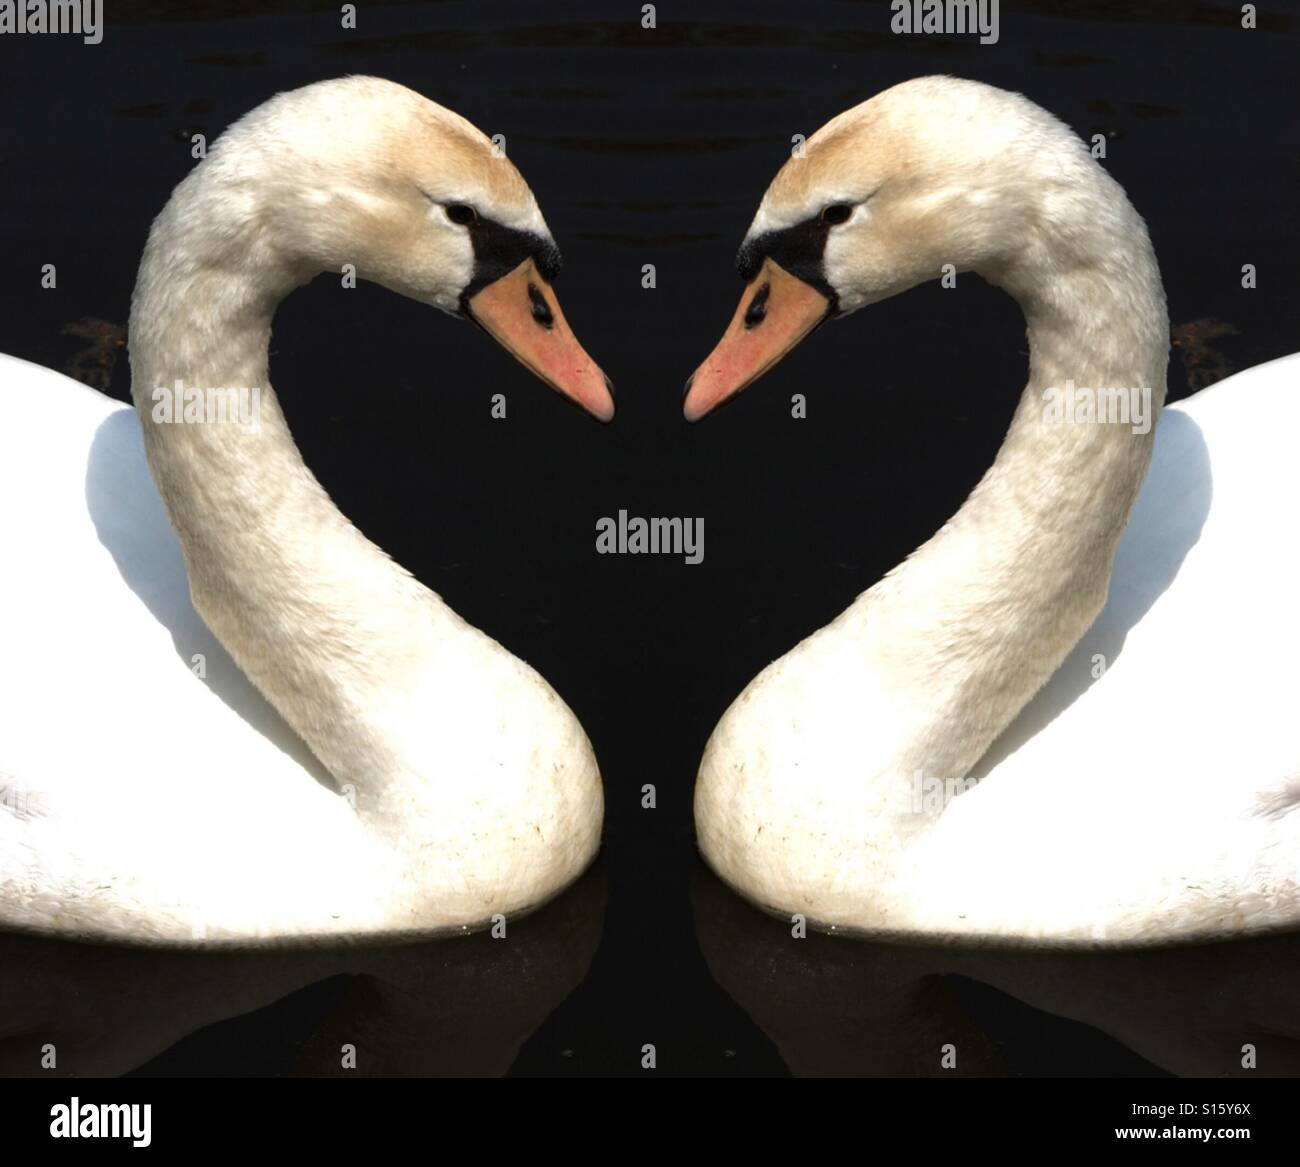 Two swans forming a heart shape Stock Photo